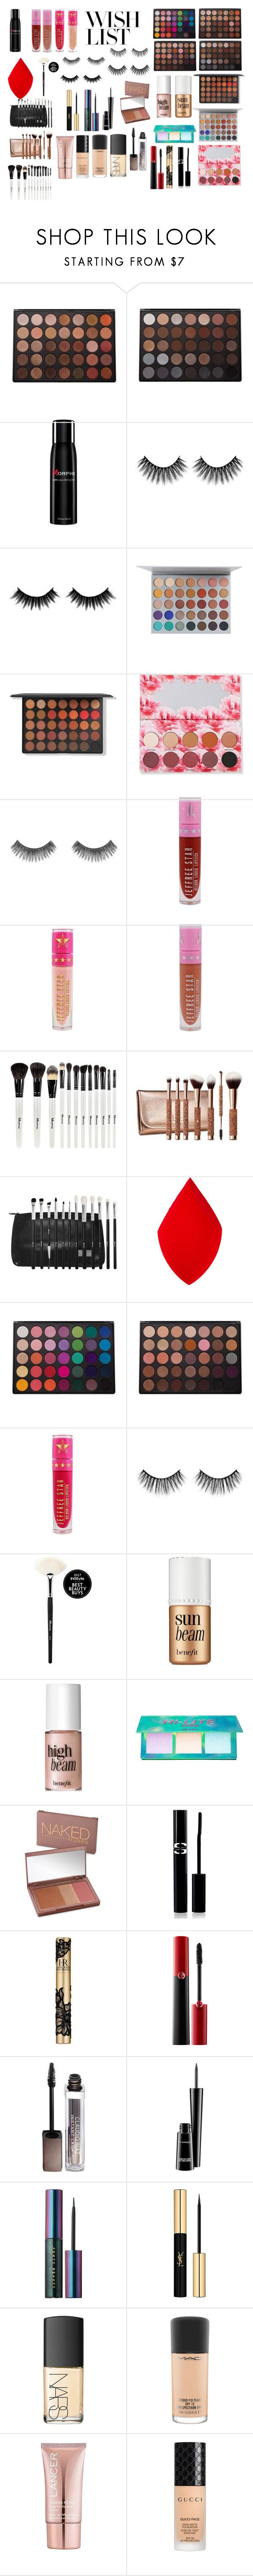 """#PolyPresents: Wish List"" by nirvanalover21 ❤ liked on Polyvore featuring Morphe, Jeffree Star, Benefit, Lime Crime, Urban Decay, Sisley, Giorgio Armani, Claudio Riaz, MAC Cosmetics and Puma"